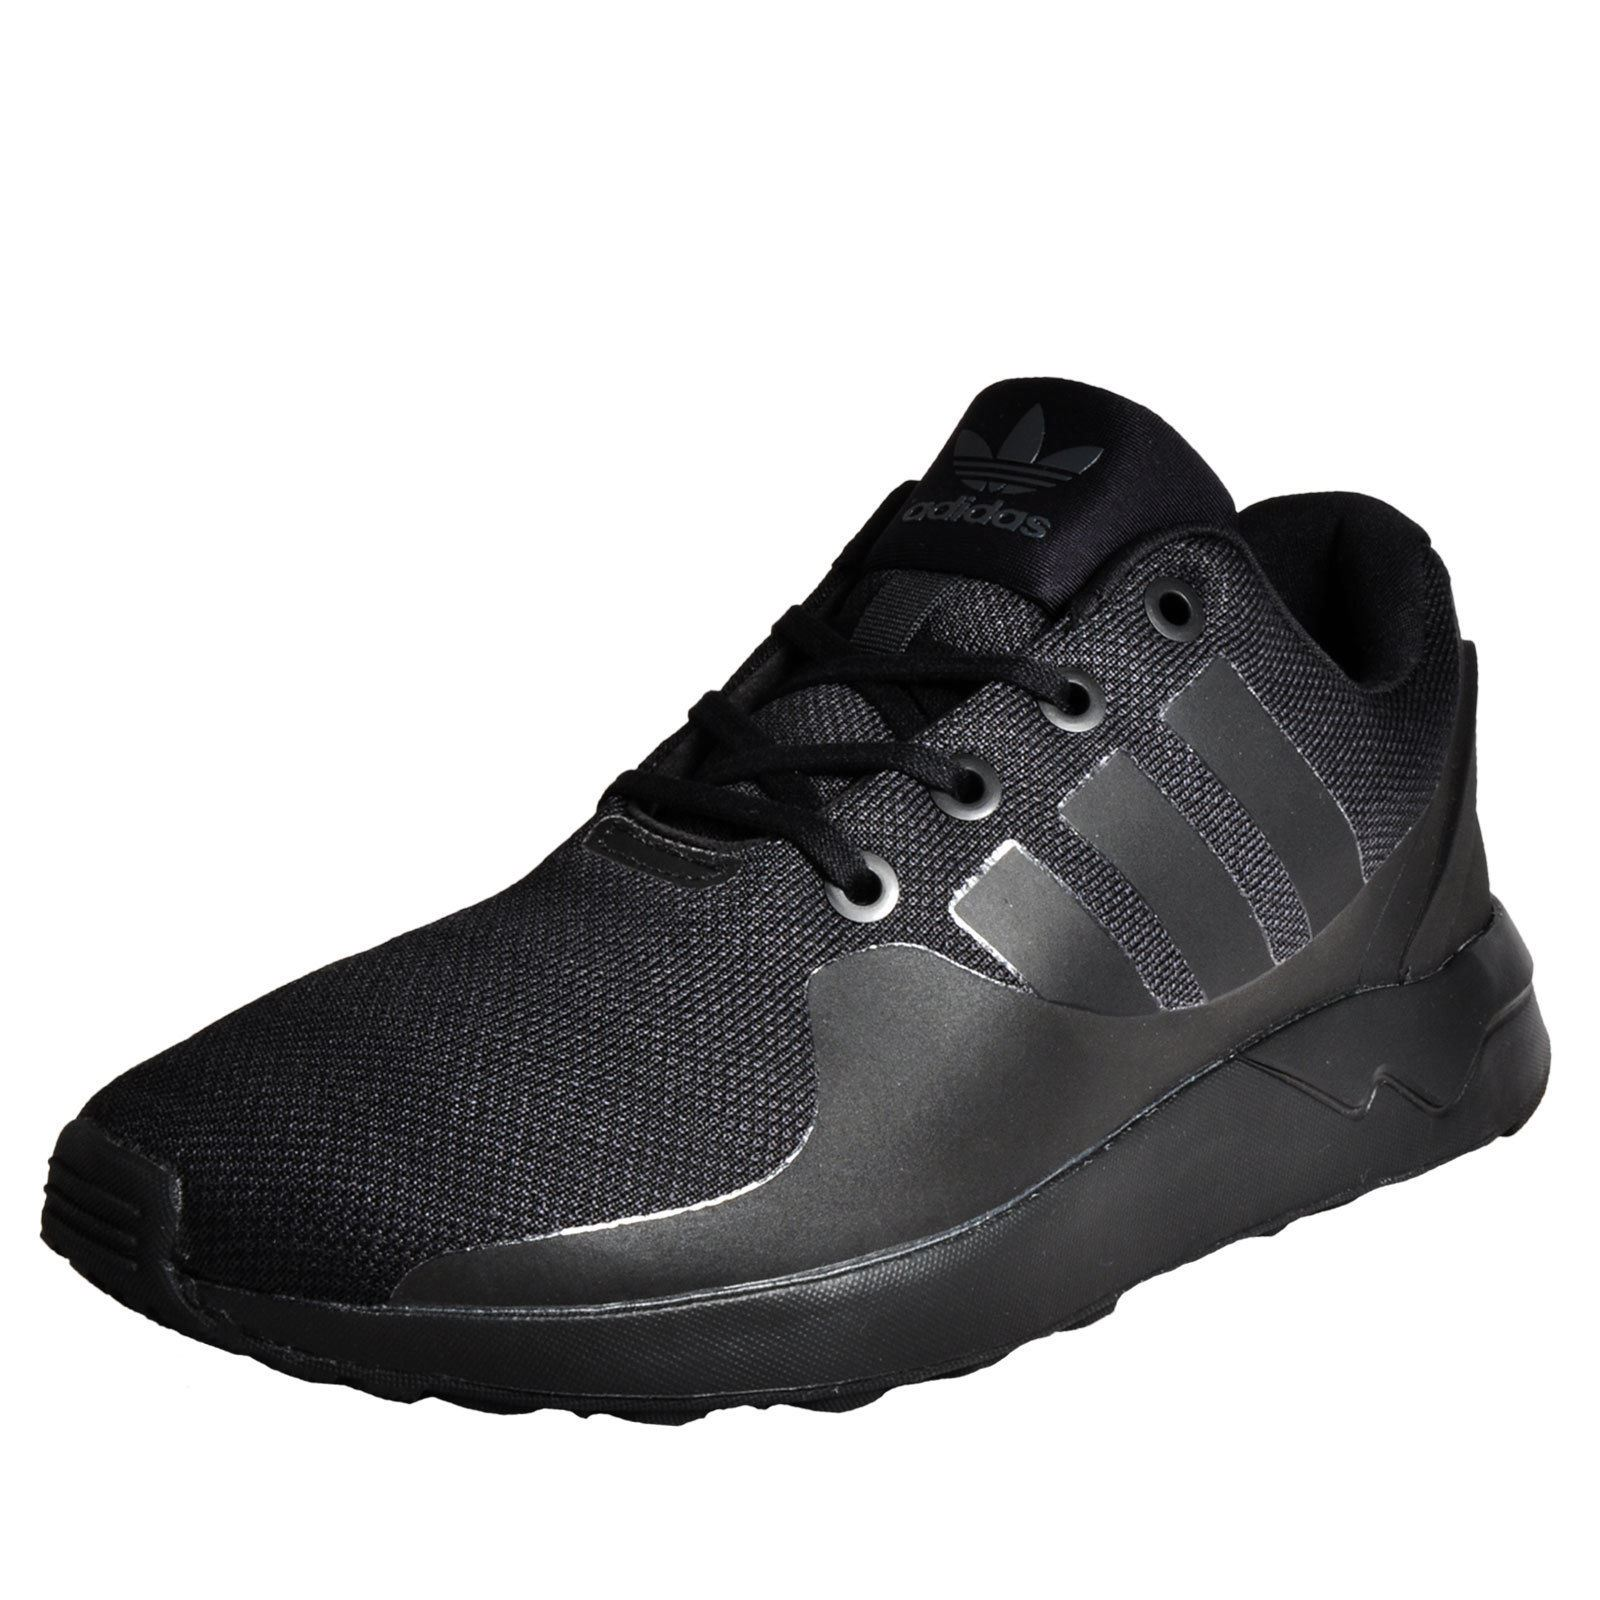 b25423568c9ec adidas Originals ZX Flux ADV Tech Trainers Mens Black Sneakers Shoes  Footwear